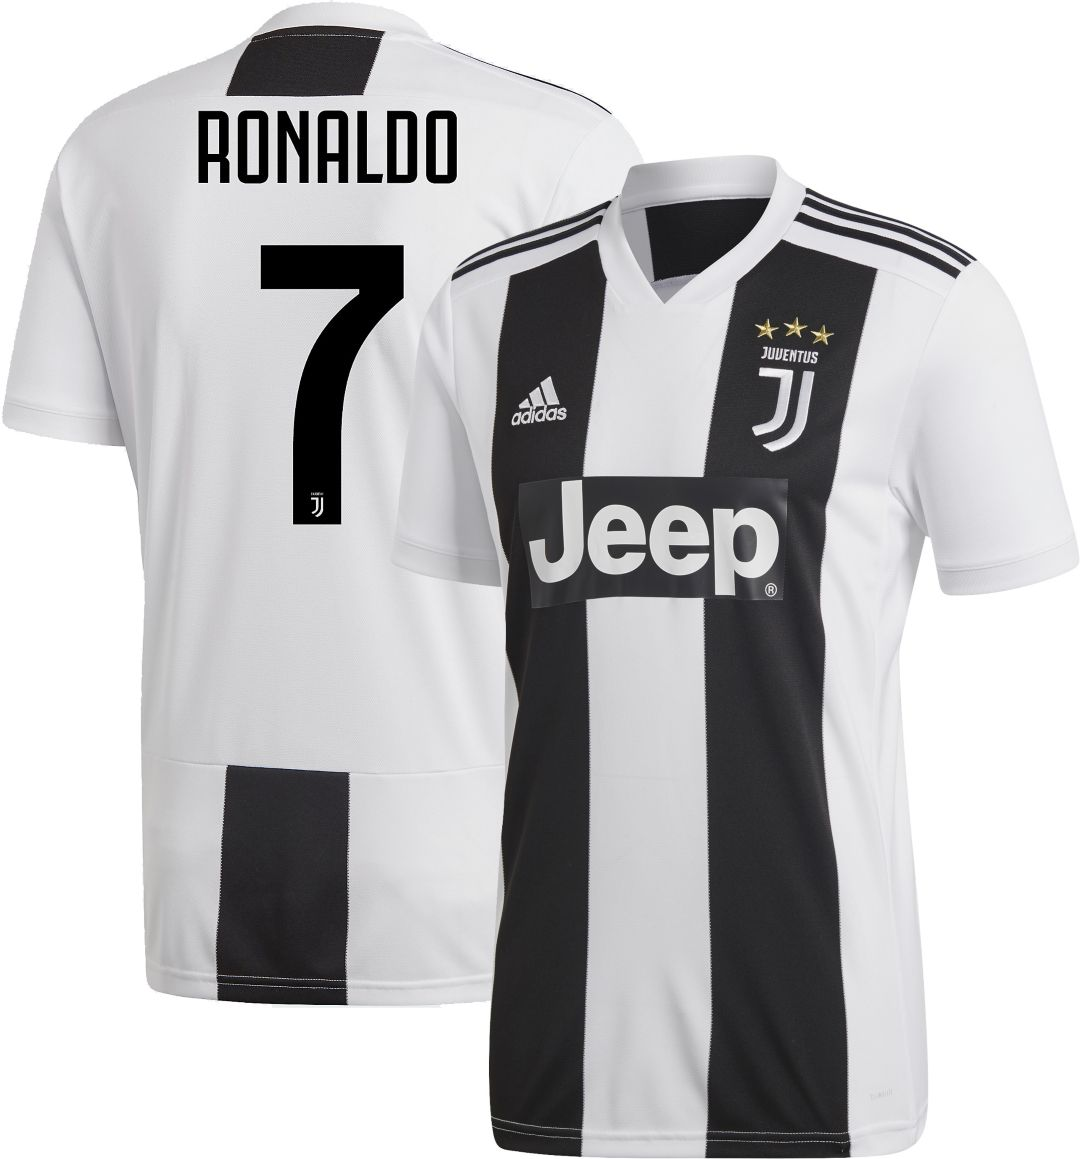 new concept a1fb2 309cf adidas Youth Juventus Stadium Cristiano Ronaldo #7 Home Replica Jersey